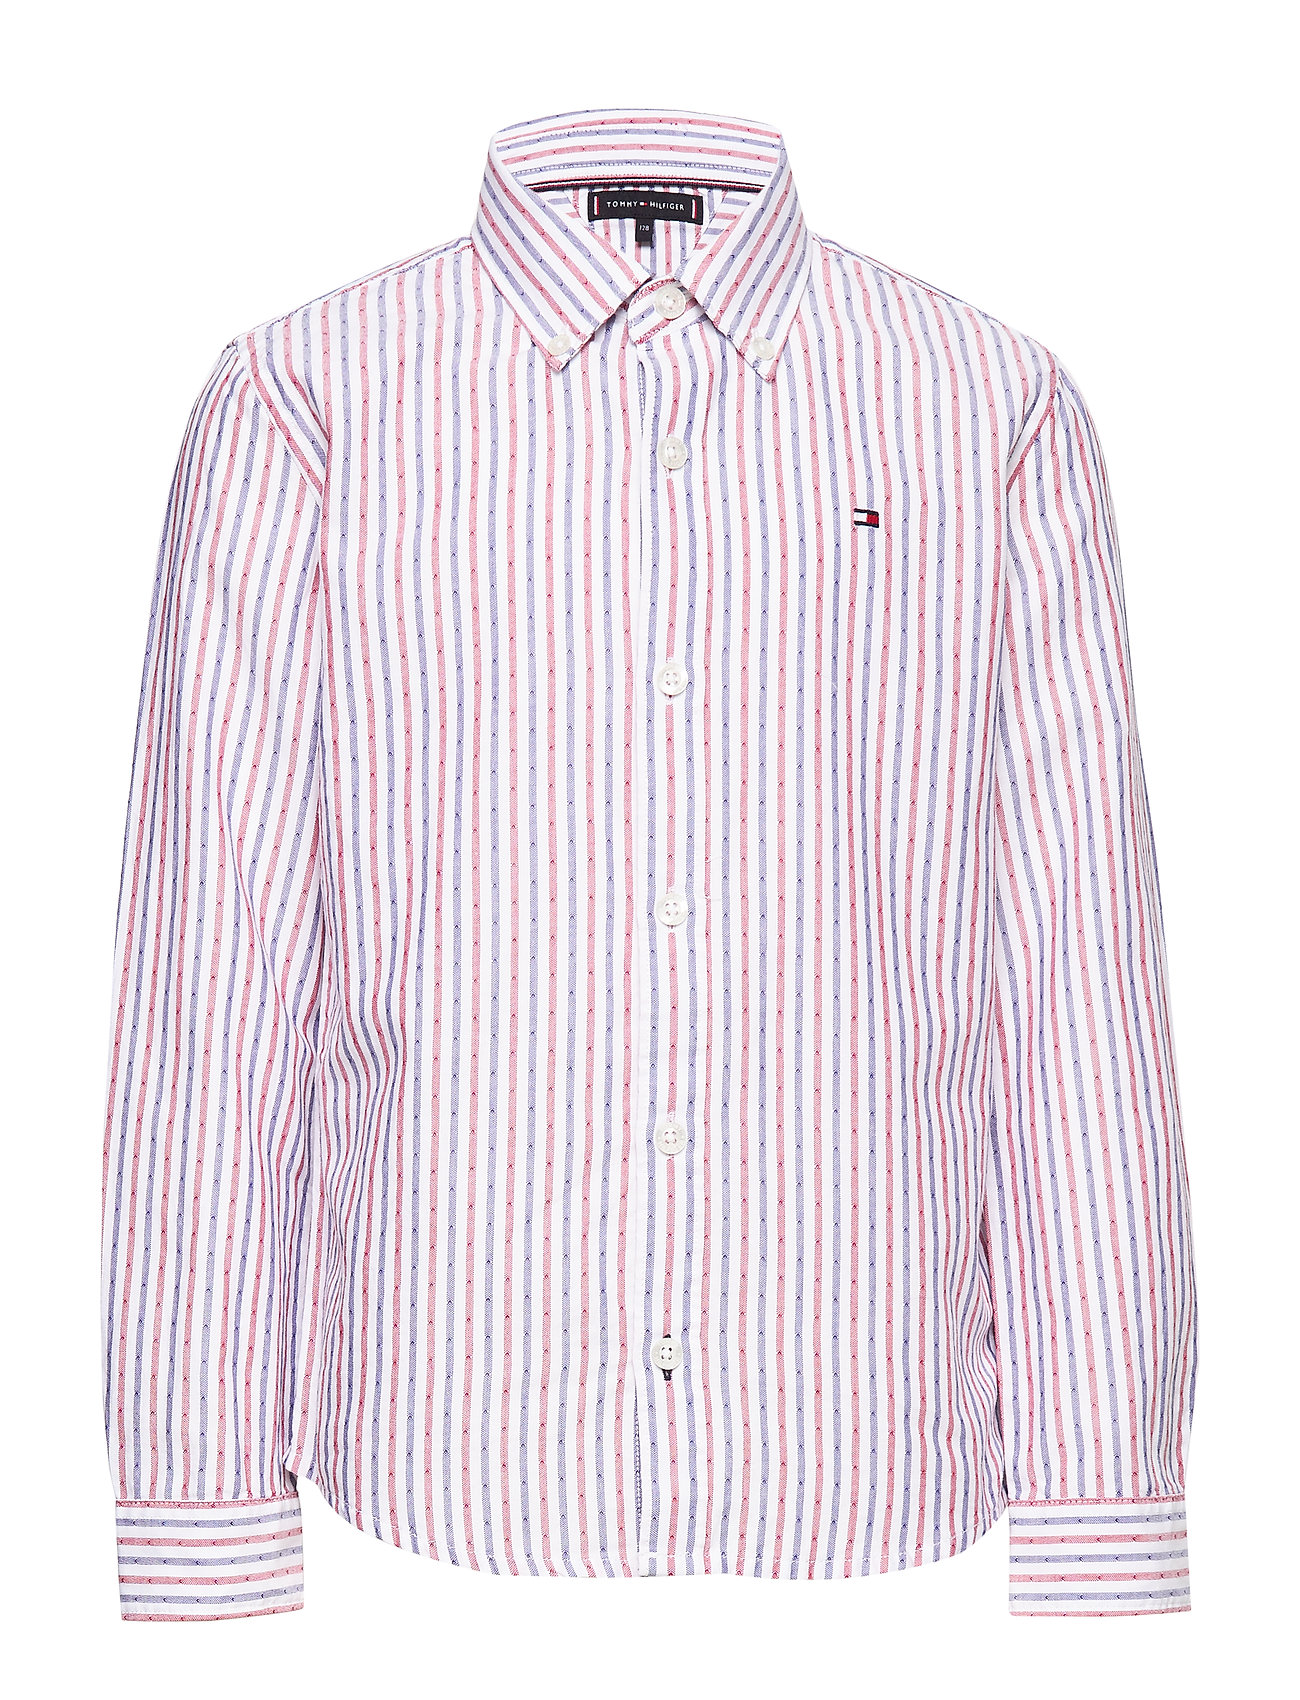 Tommy Hilfiger DOBBY STRIPE SHIRT L - WHITE STRIPE 02/RACING RED